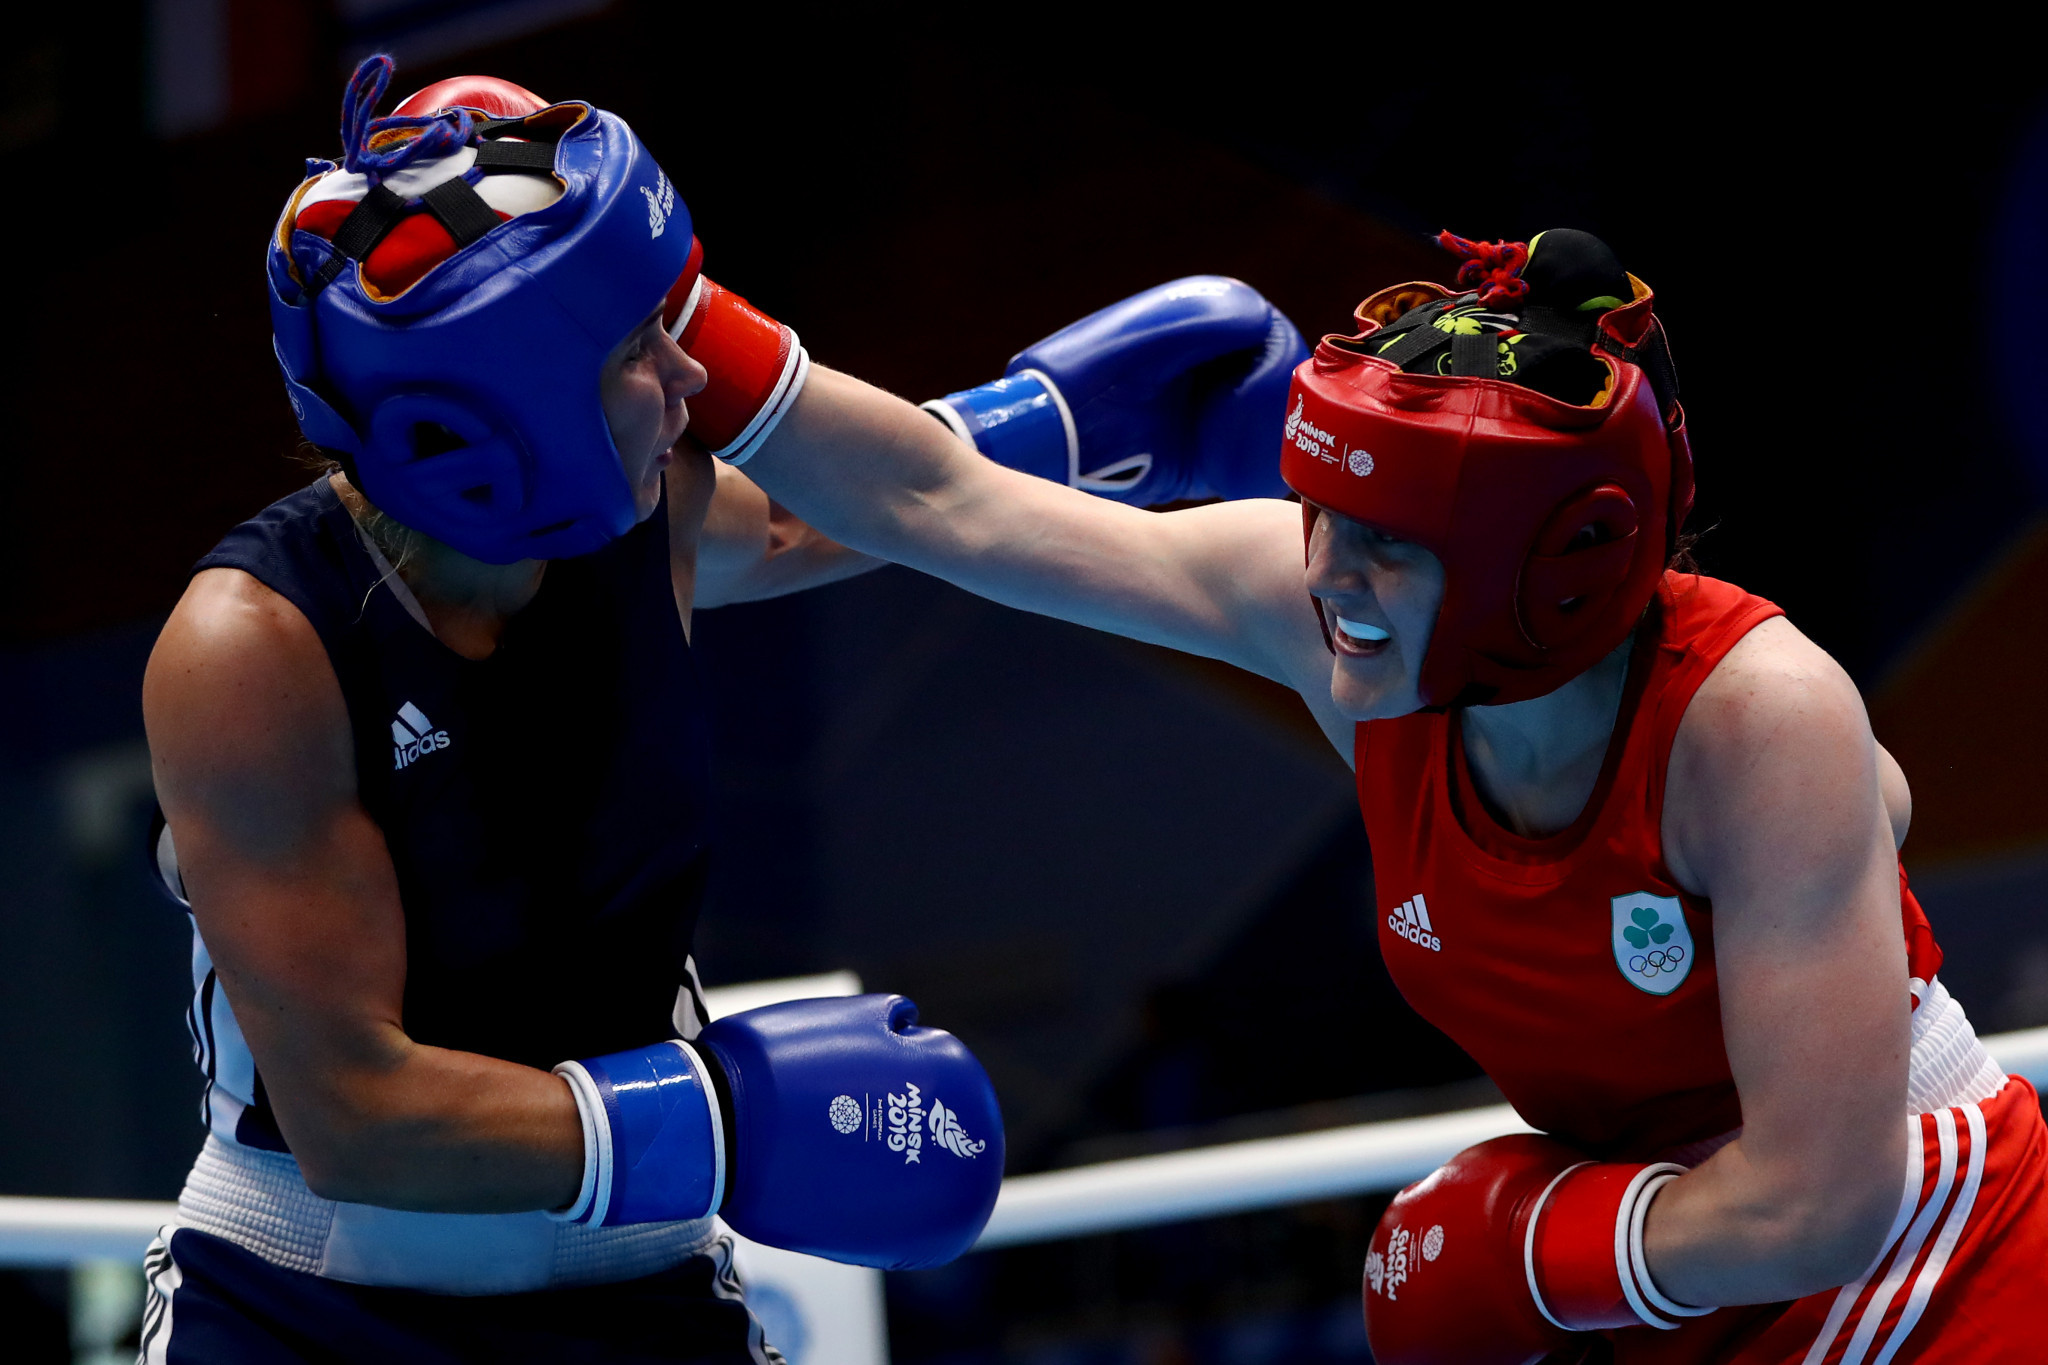 Michaela Walsh was seeded second in the European boxing qualifier, which was halted earlier this year ©Getty Images